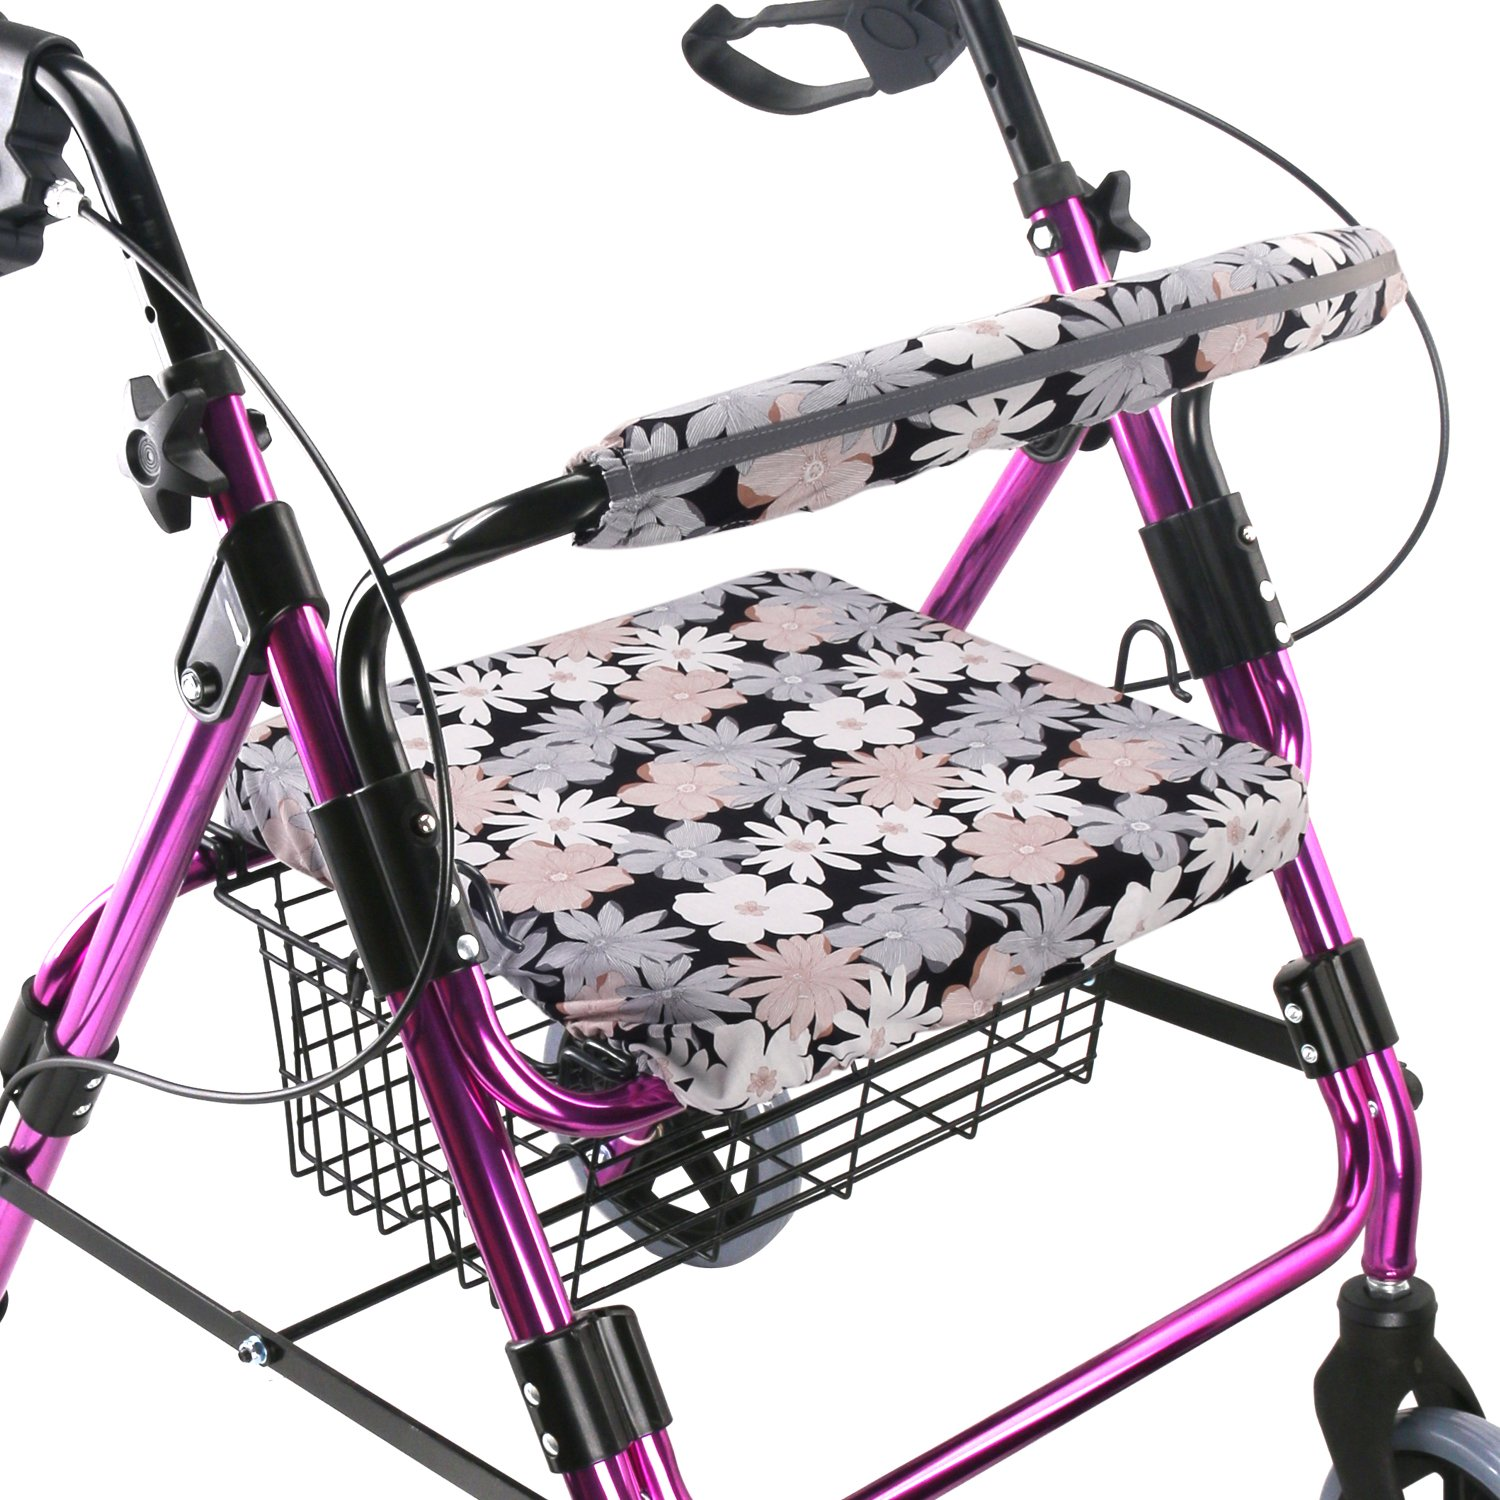 Walker Seat Cover Rollator Walker Seat and Backrest Covers Vibrant Walker Cover One Size Multiple Colors (CB1883)